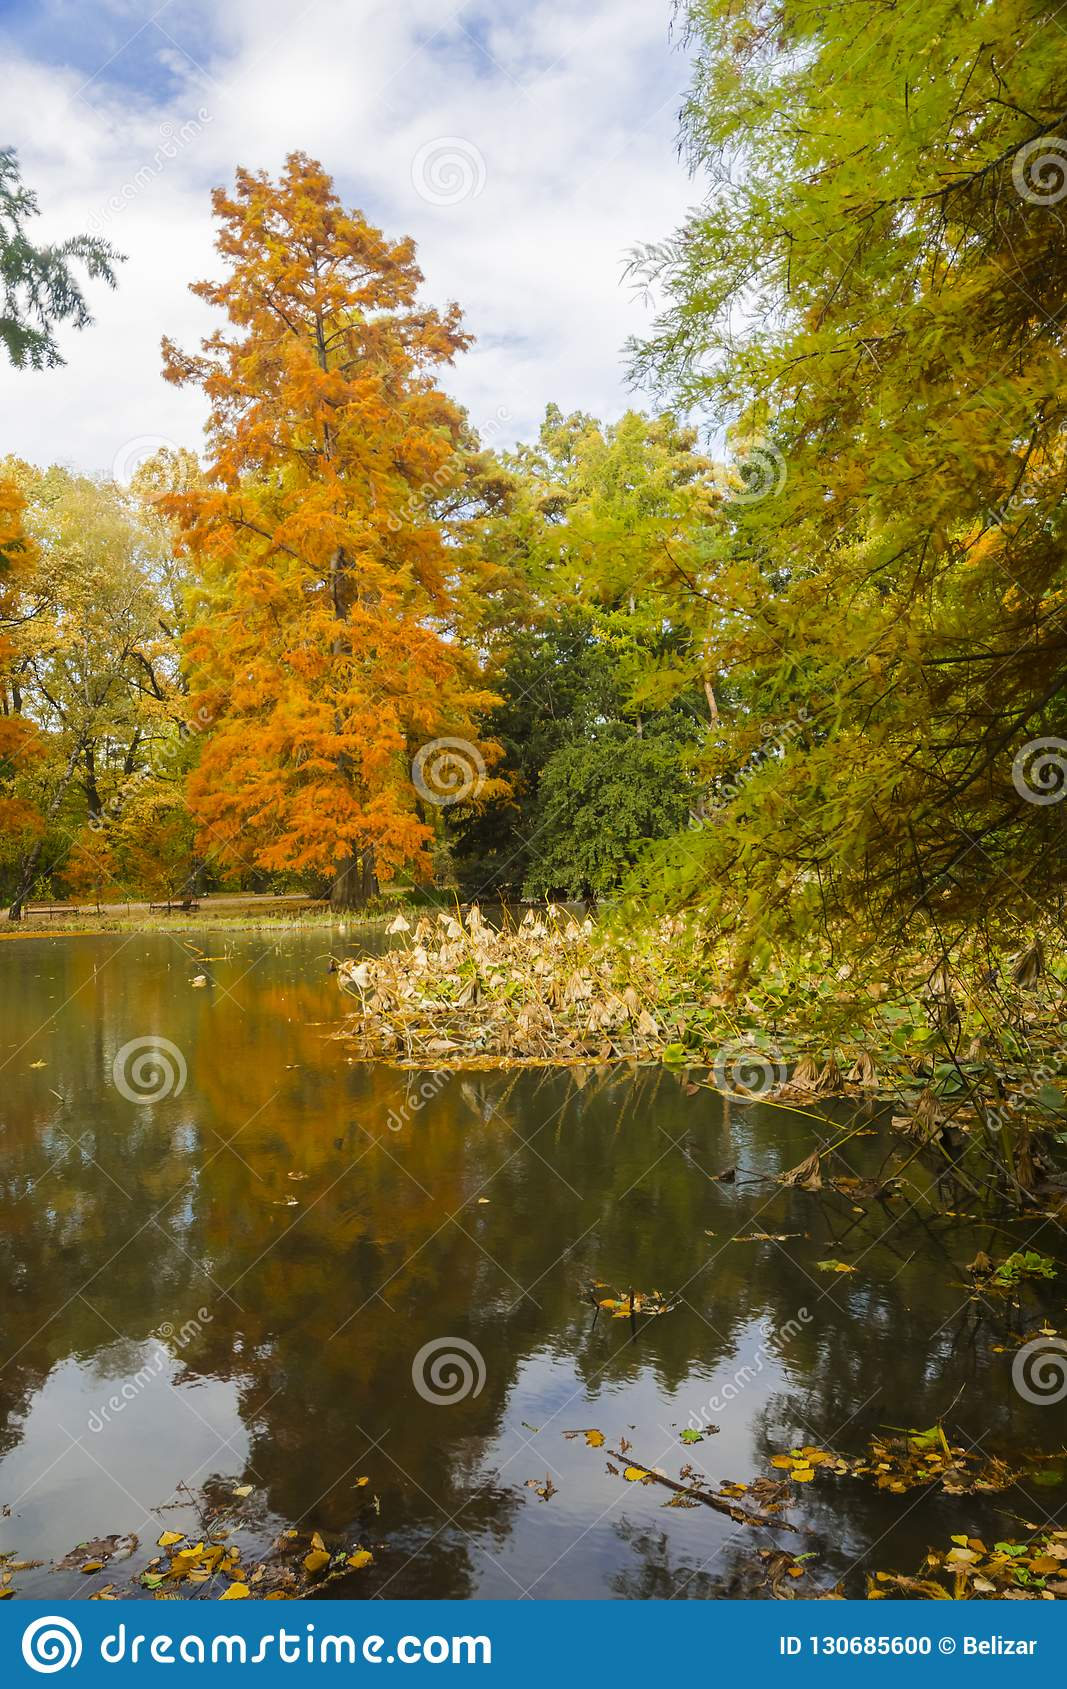 Pond with cypresses